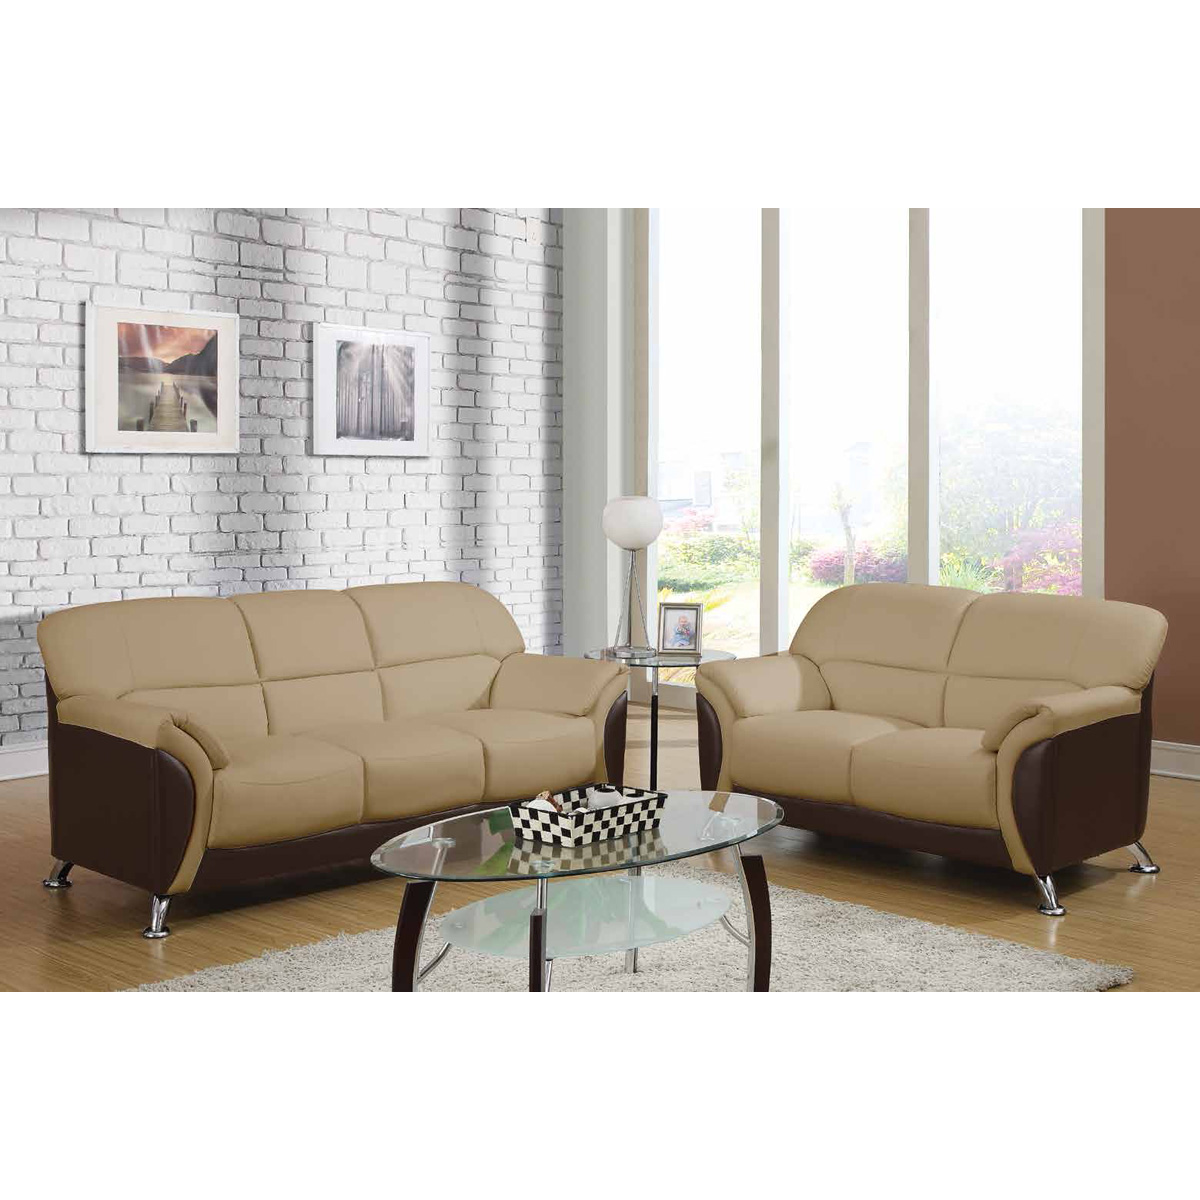 Sofa Free Delivery: Maxwell Sofa Set In Cappuccino/Chocolate